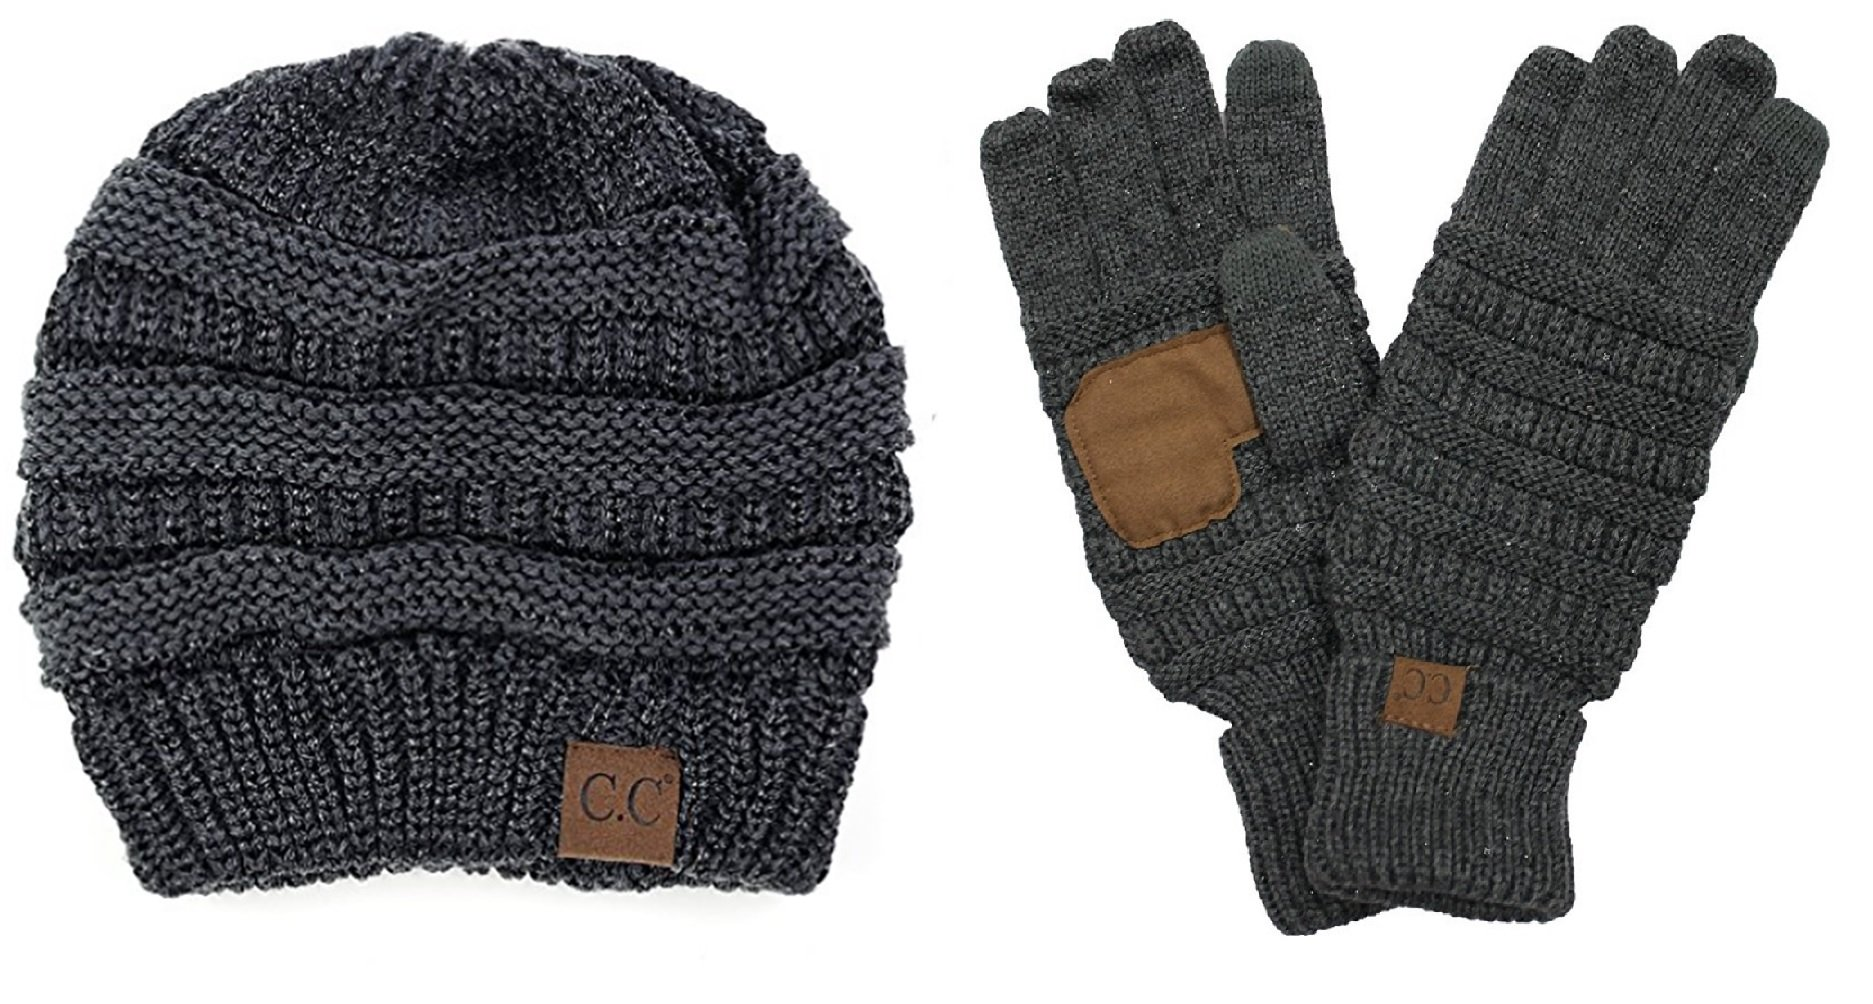 BYSUMMER C.C. Warm Winter Cable Knit Slouchy Beanie and Smart Touch Texting Gloves Bundle Set (Metalic Dark Melange Grey)